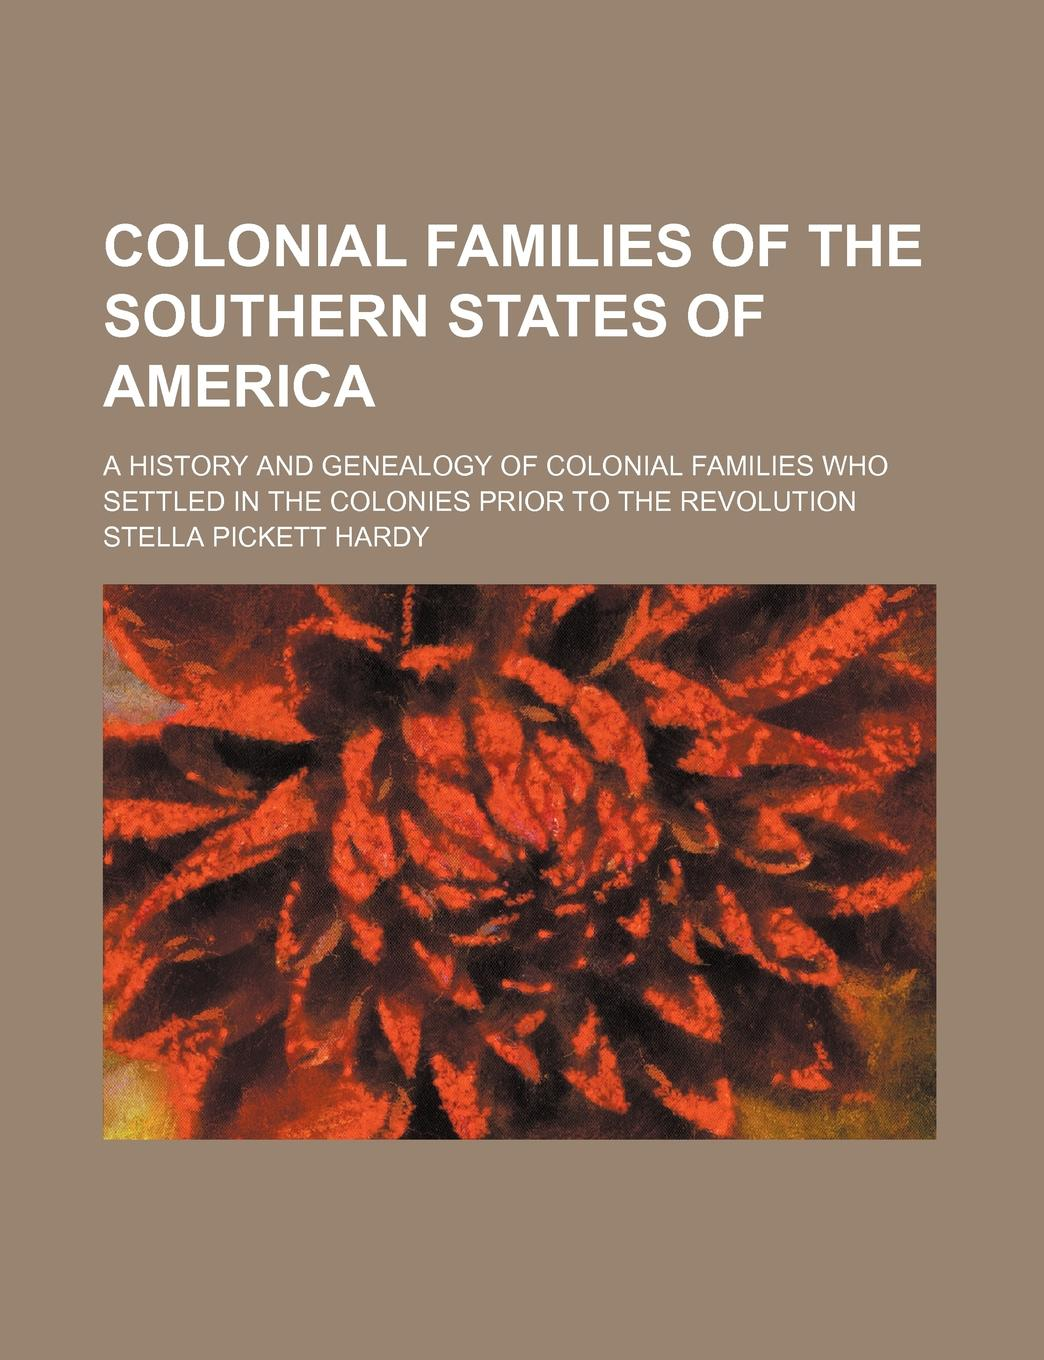 Stella Pickett Hardy Colonial Families of the Southern States of America; A History and Genealogy of Colonial Families Who Settled in the Colonies Prior to the Revolution sitemap html page 10 page 8 page 5 page 8